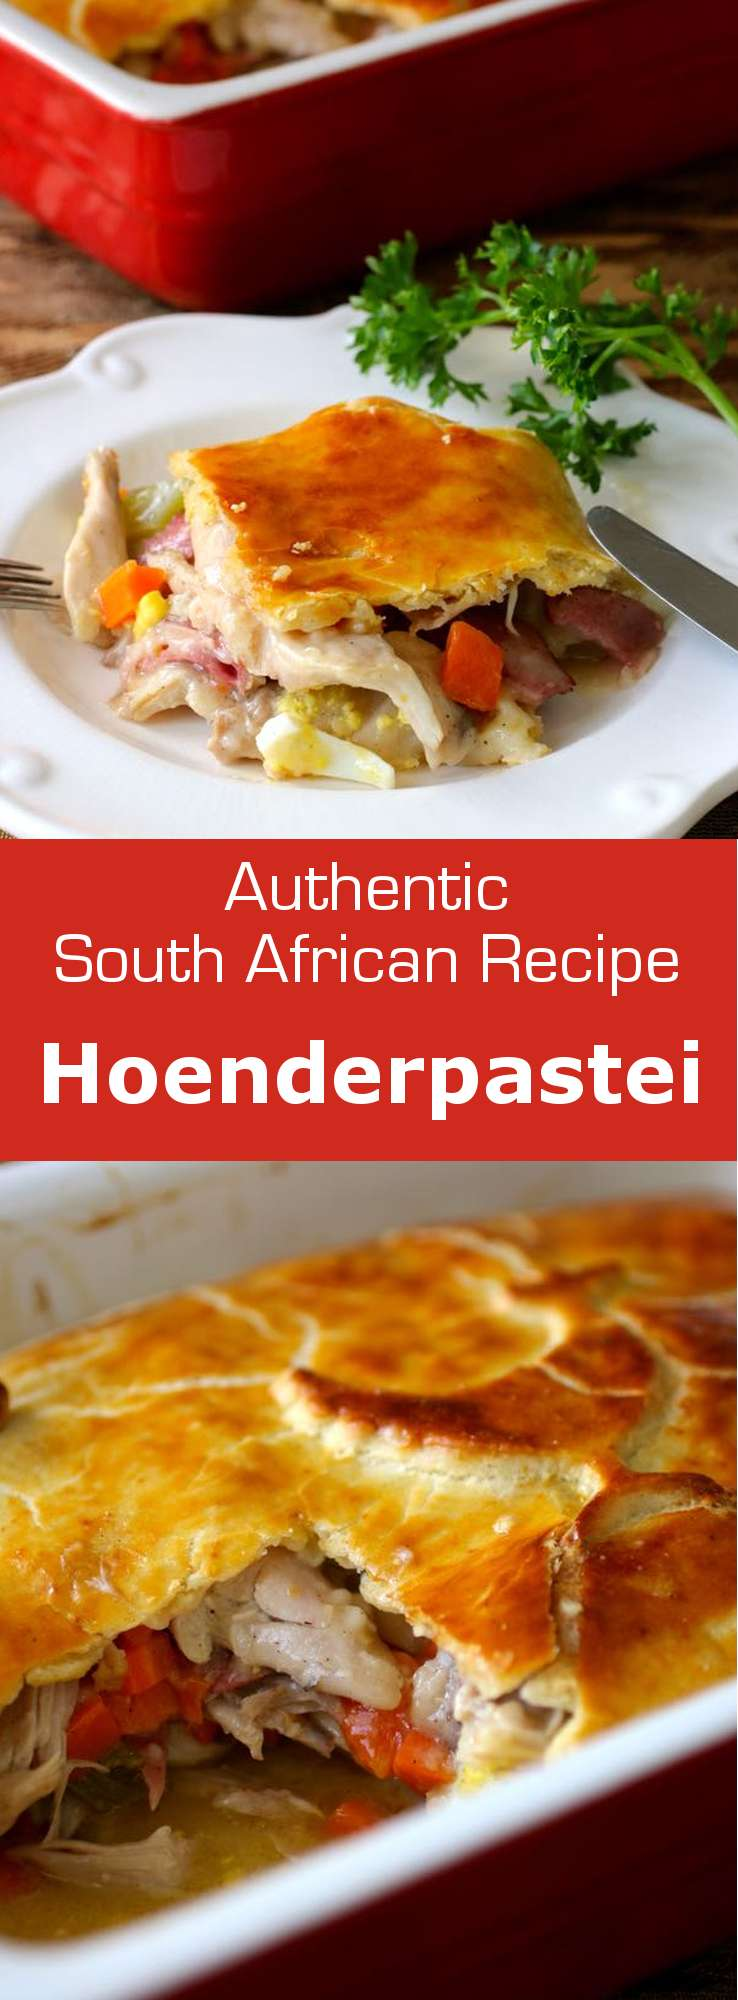 Hoenderpastei is a South African chicken-pot pie topped with a crust, and layered with vegetables, hard-boiled egg and ham slices. #SouthAfrica #196flavors